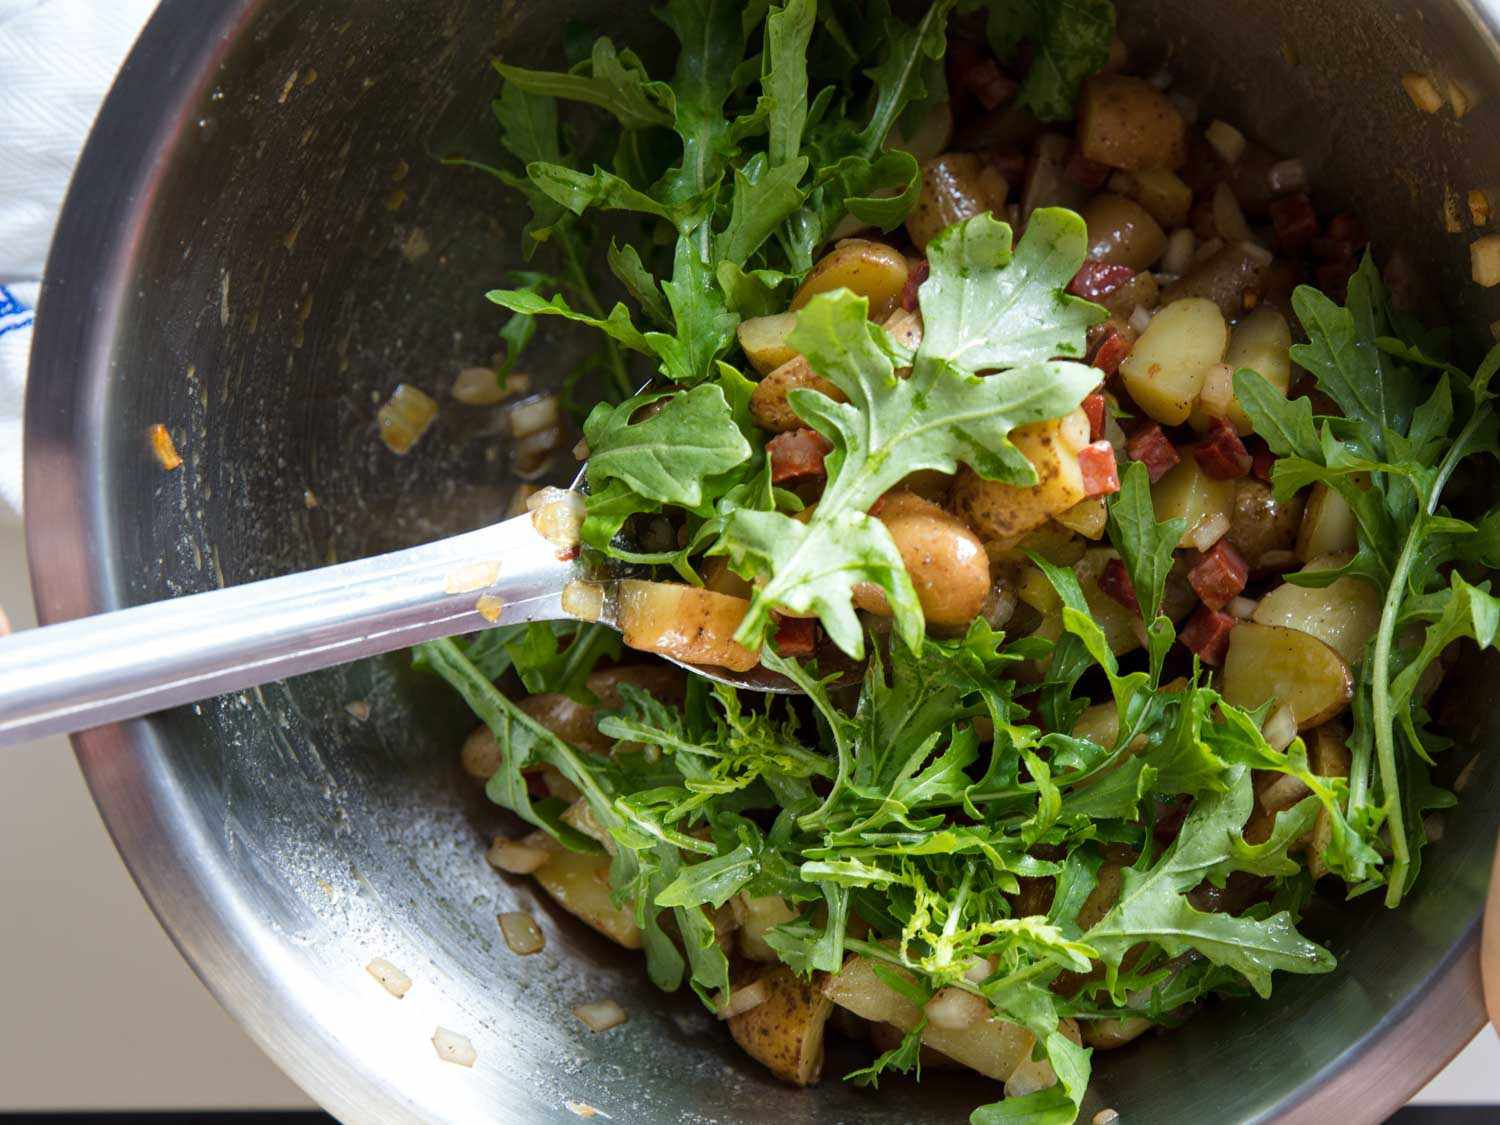 Mixing arugula leaves into a bowl of fingerling potatoes, sautéed onion, pickled onion, and diced chorizo